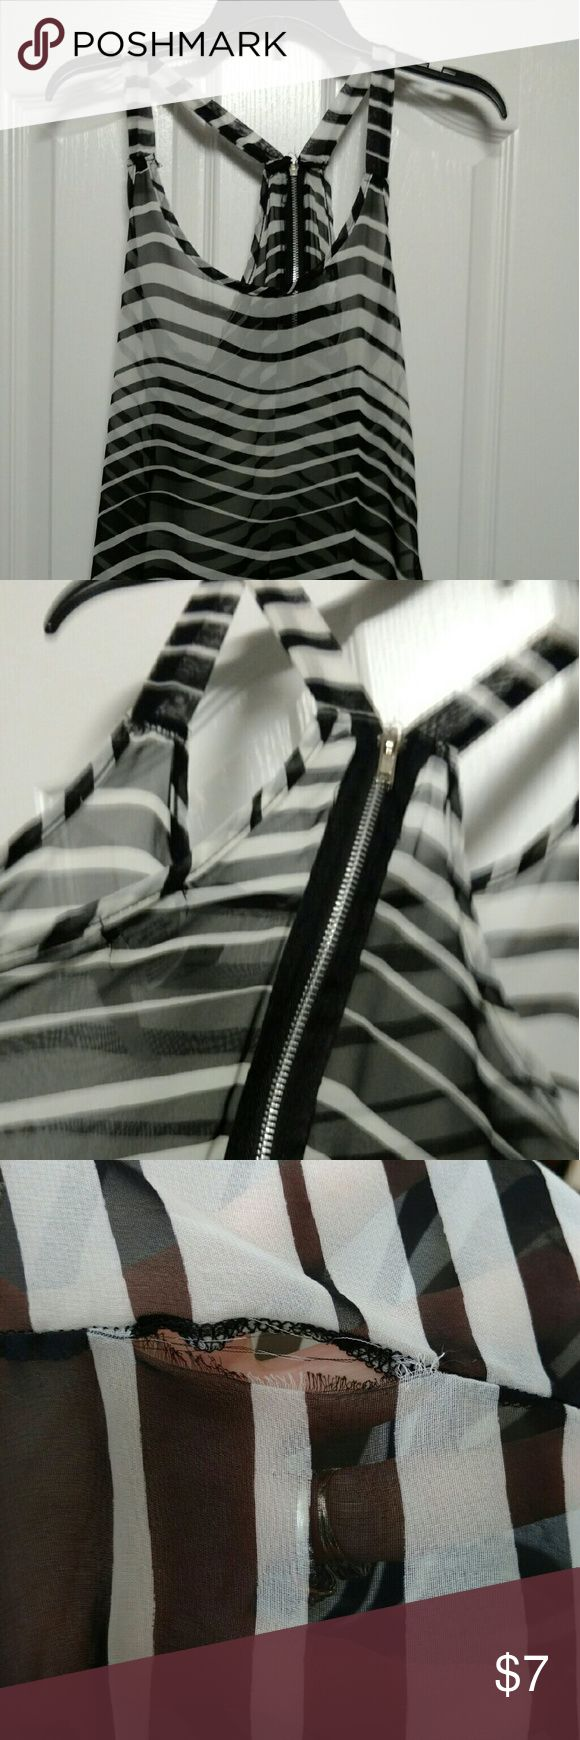 "Black and white striped top with exposed zipper Black and white striped top, exposed zipper,  arm pit to arm pit is 18 "",  arm pit to hem 18 There is a small separation of material, shown in the last 2 pictures. Lily White Tops"